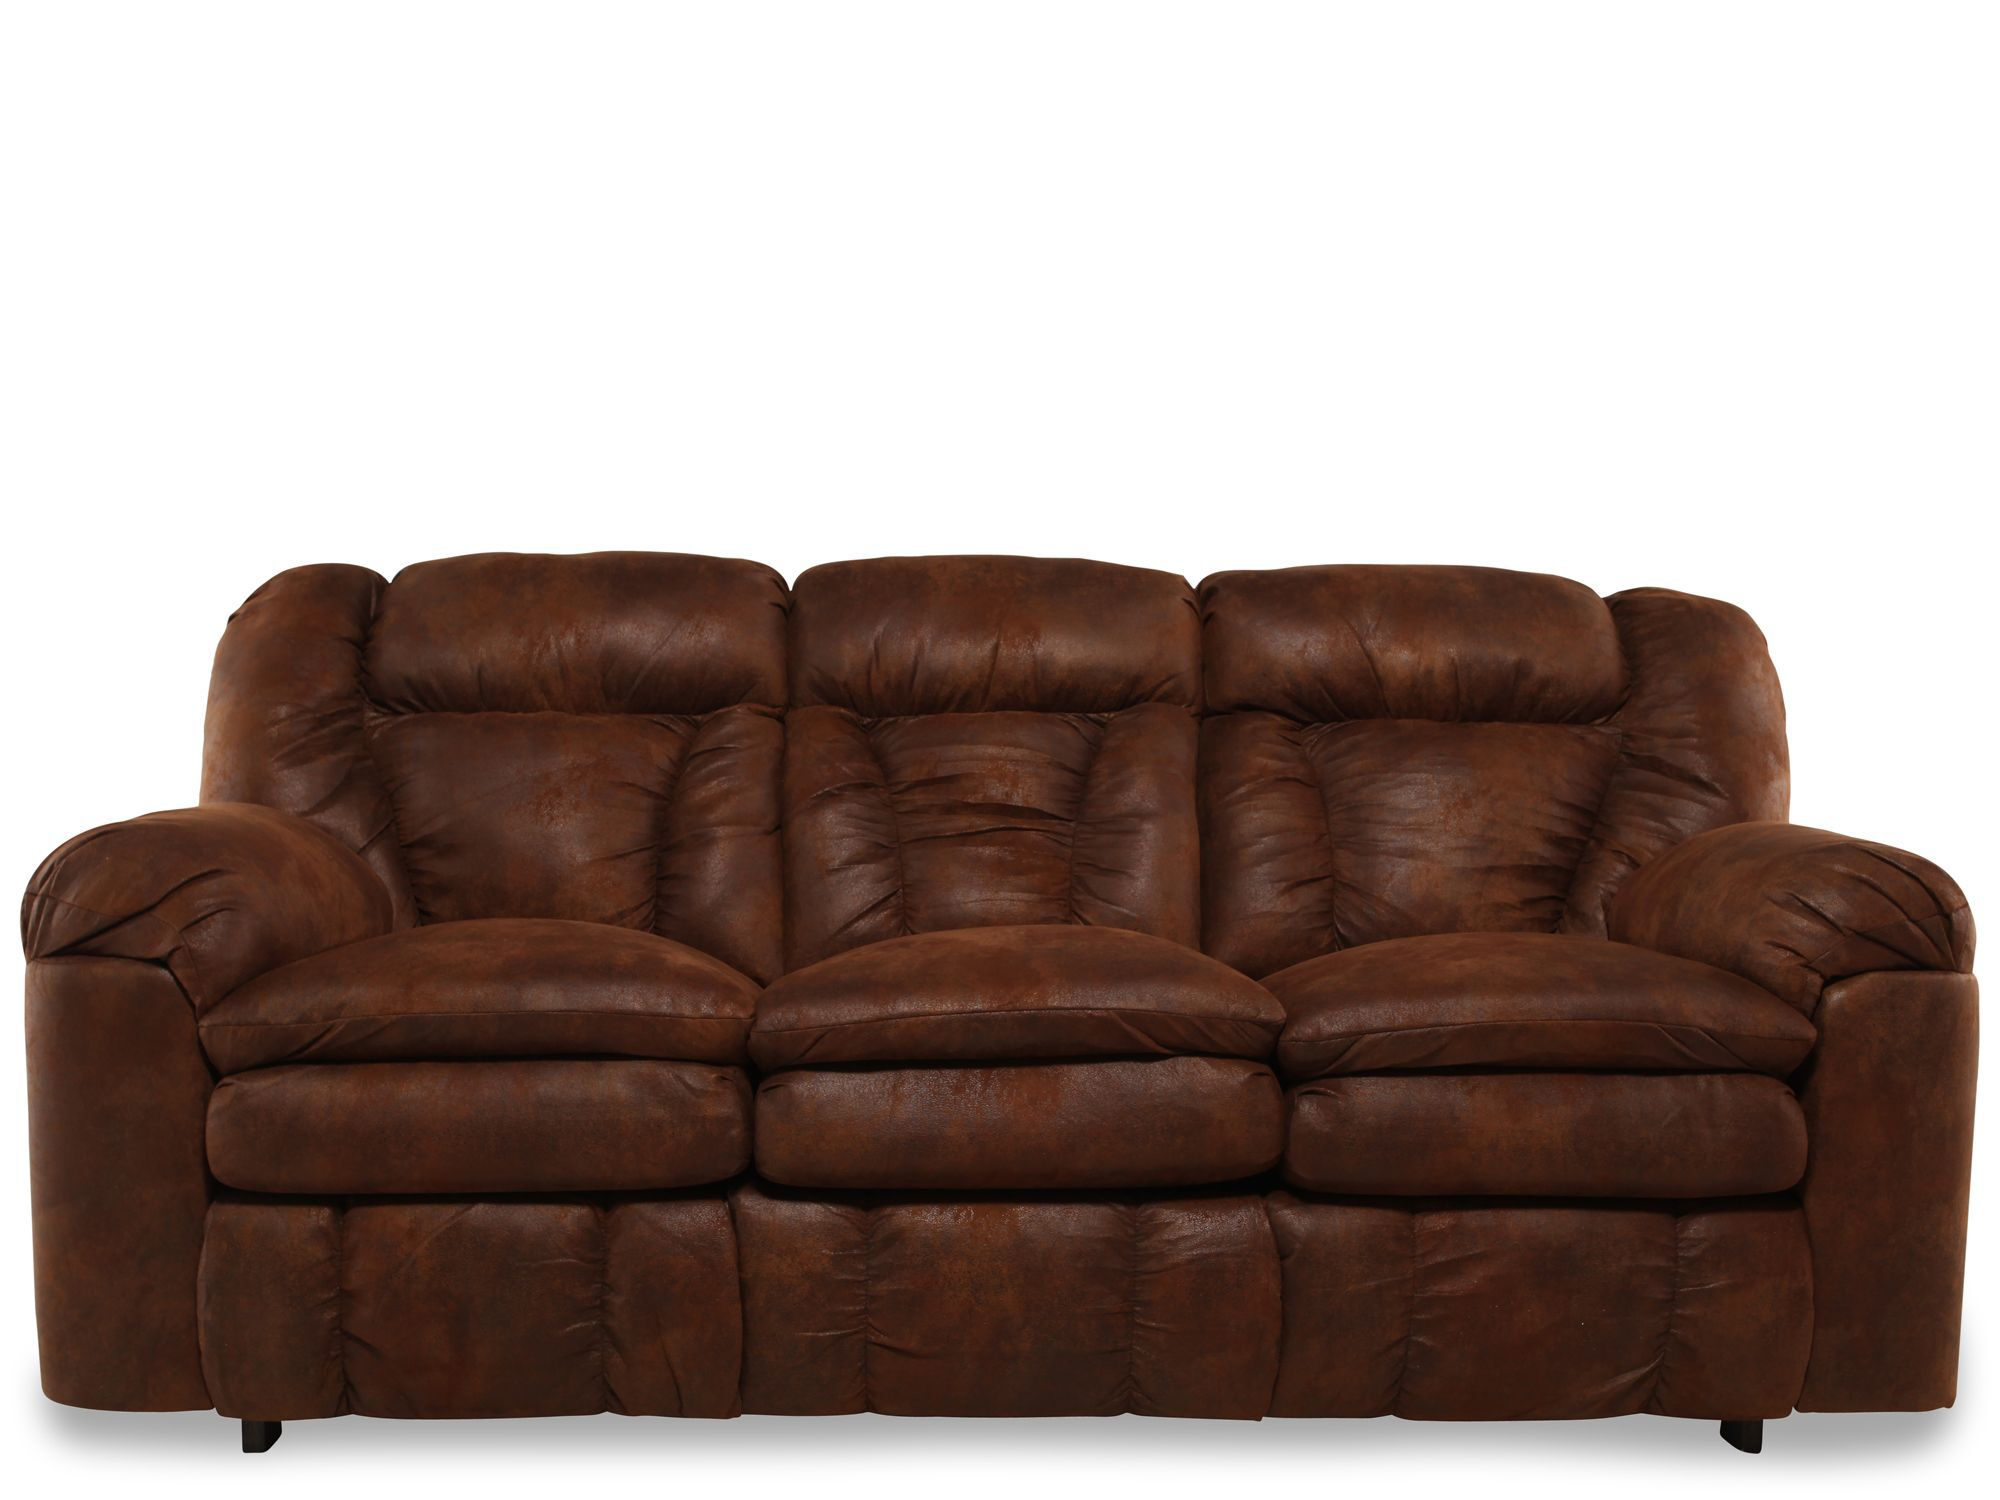 lane sleeper sofa queen %e0%b8%a3 %e0%b8%a7 sweet sf talon coffee mathis brothers furniture